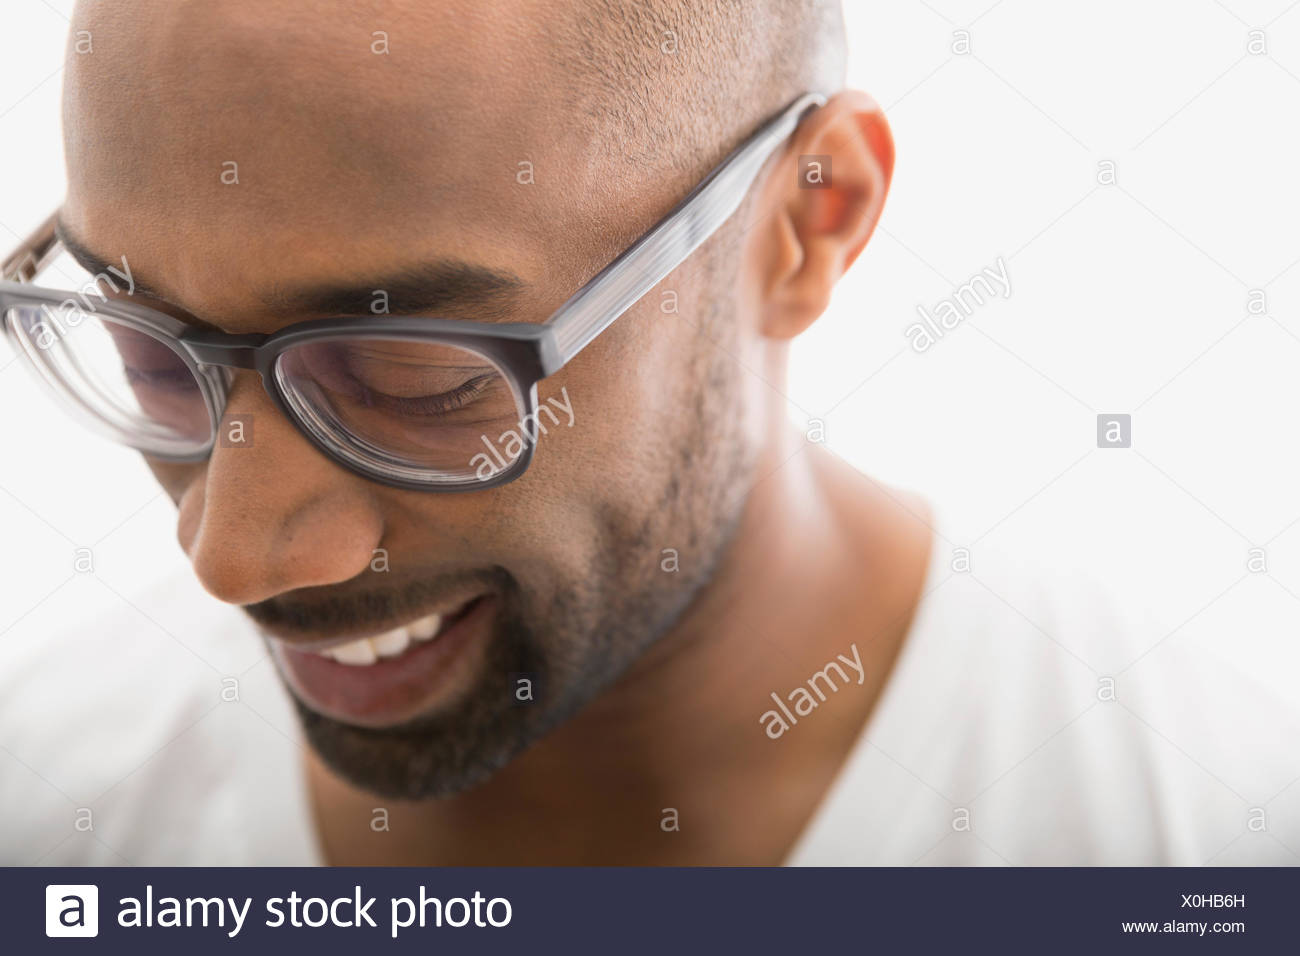 Close up of man in eyeglasses looking down - Stock Image